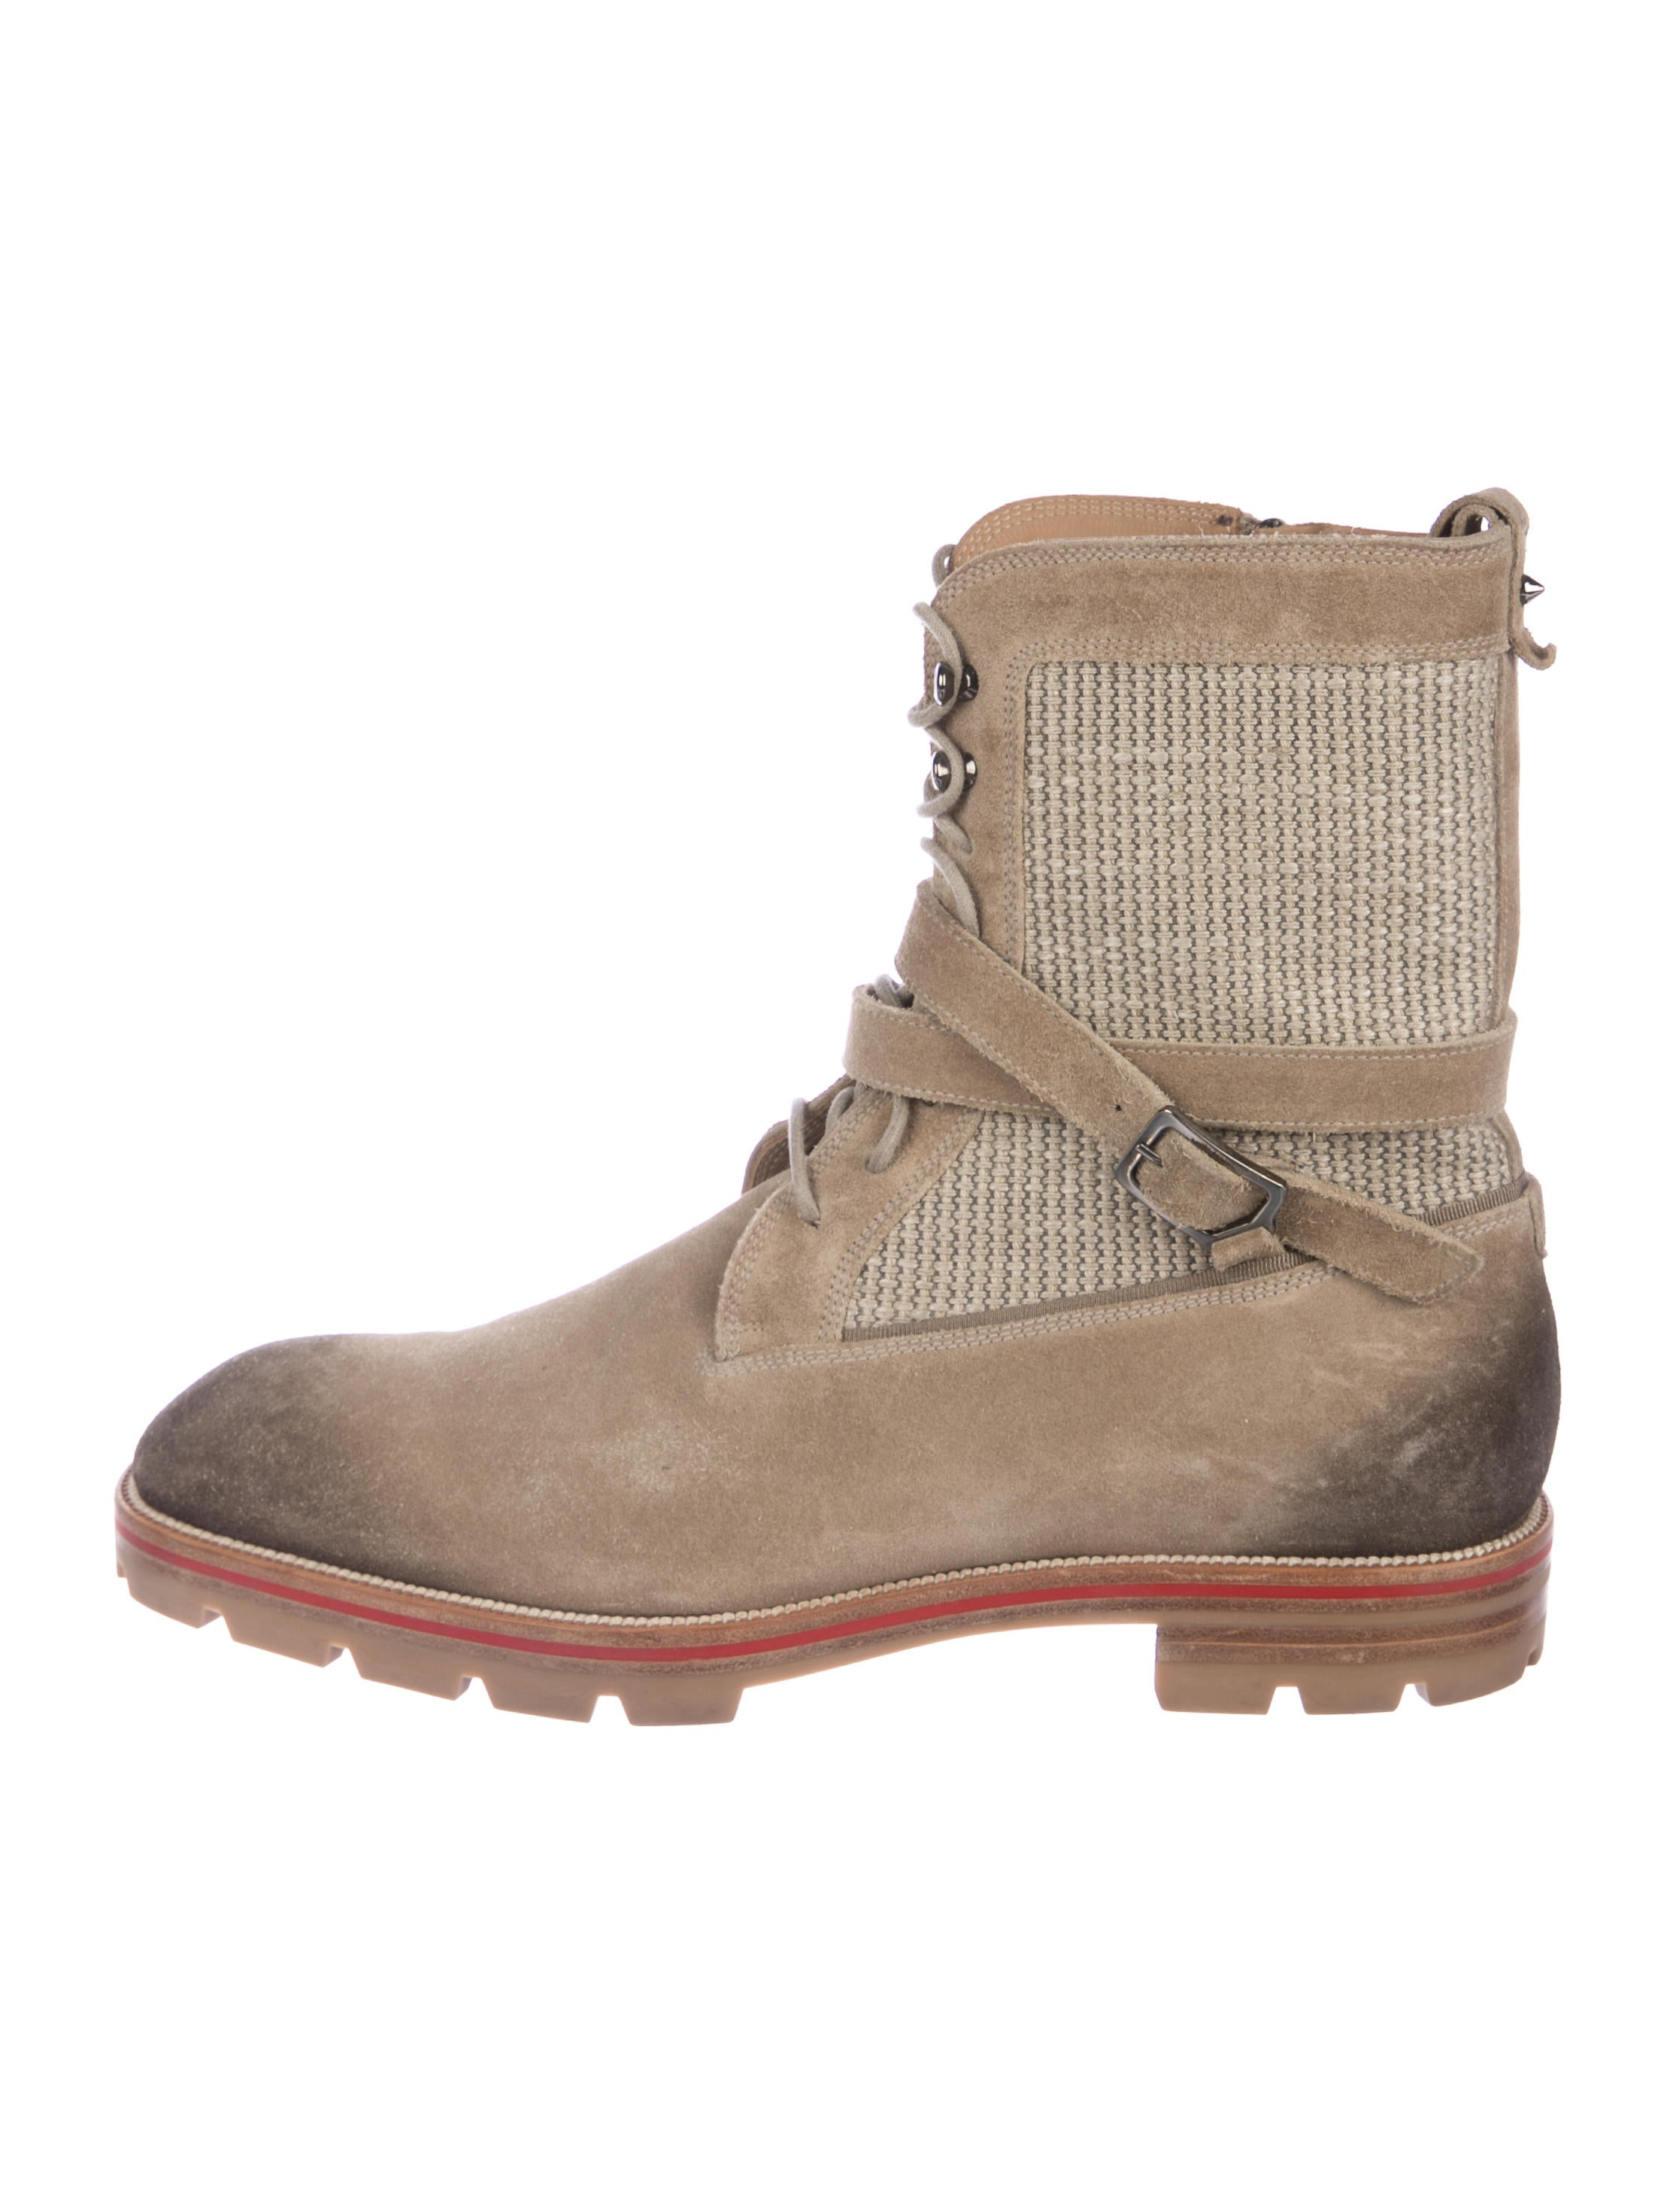 san francisco cfd6f ccacb Christian Louboutin Suede Combat Boots - Shoes - CHT99591 ...